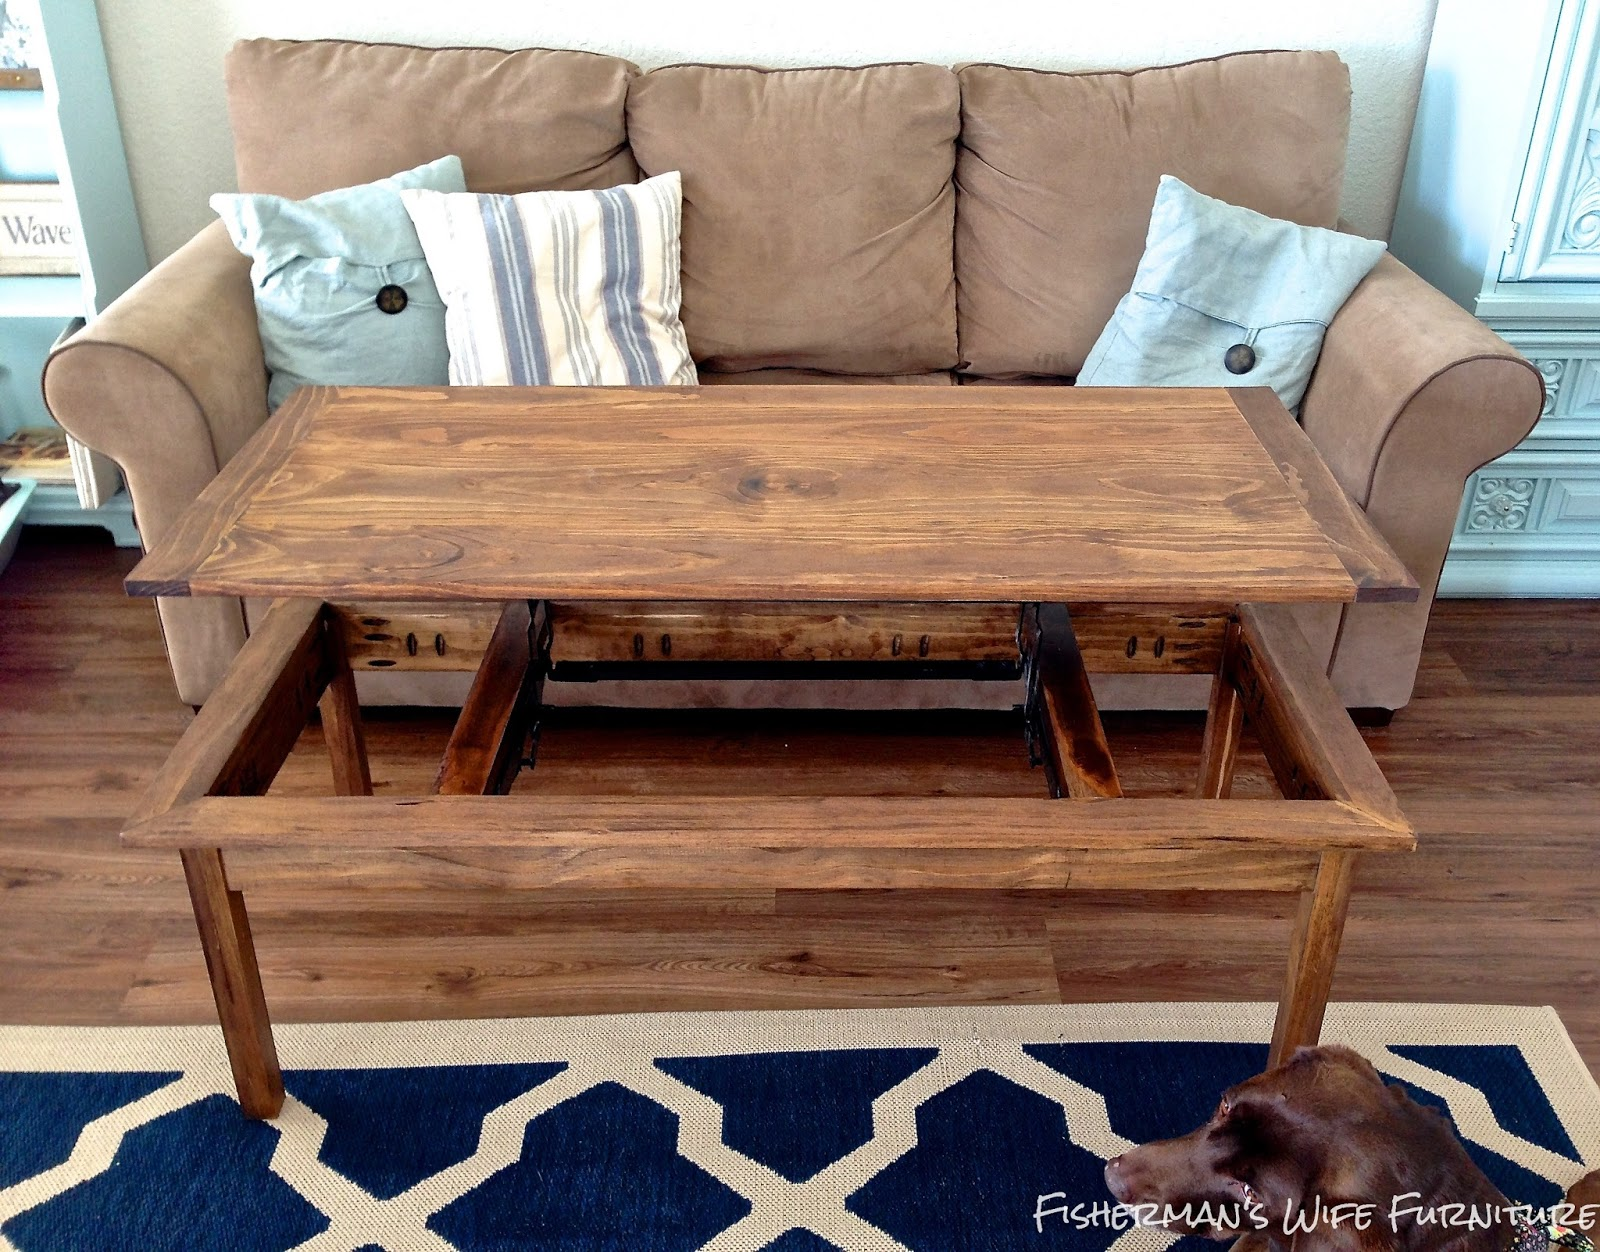 Fisherman s Wife Furniture DIY Coffee Table